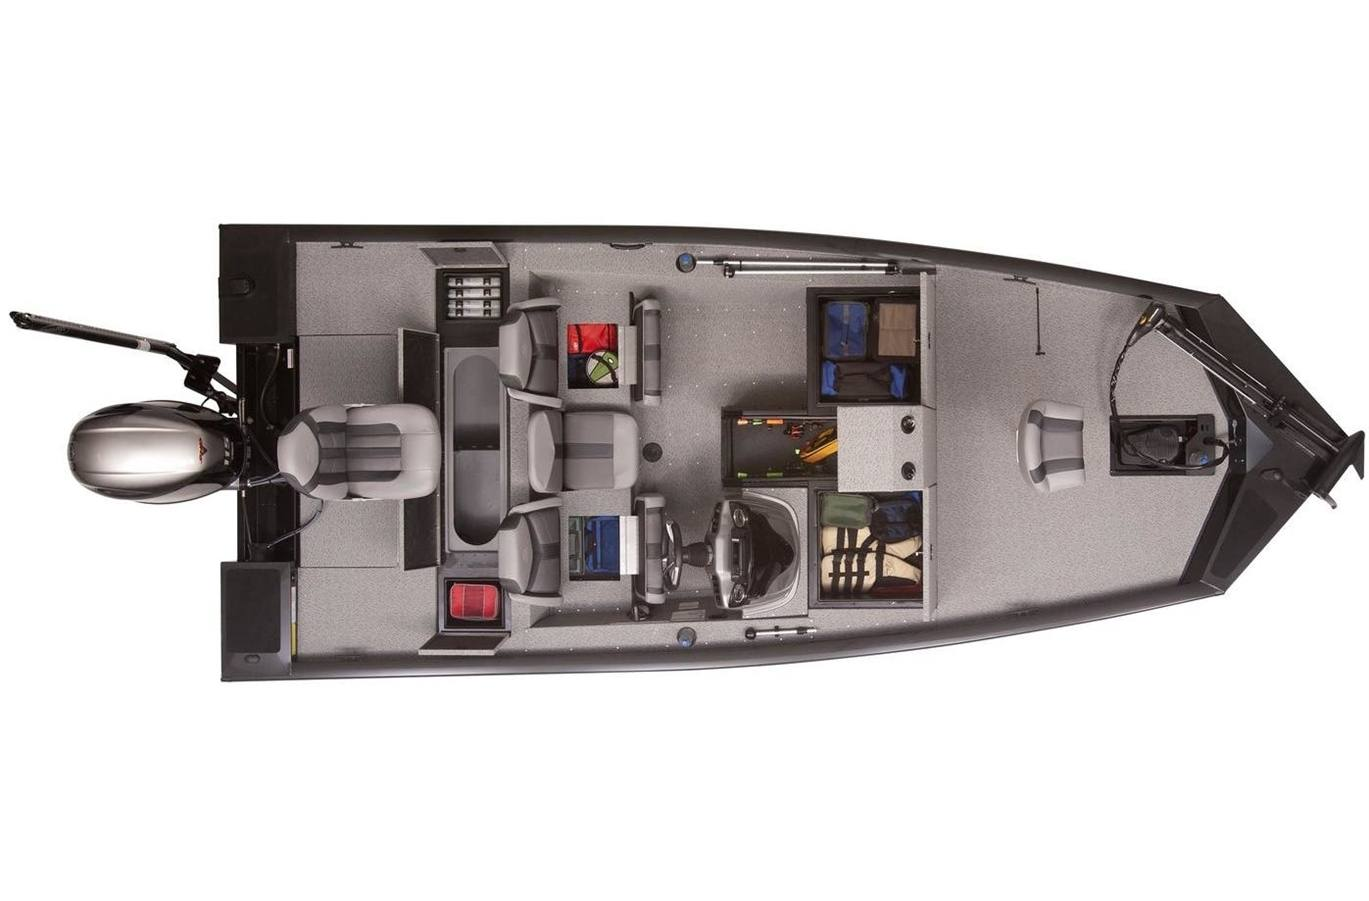 2020 G3 Sportsman 1810 for sale in Osage Beach, MO  Lake of